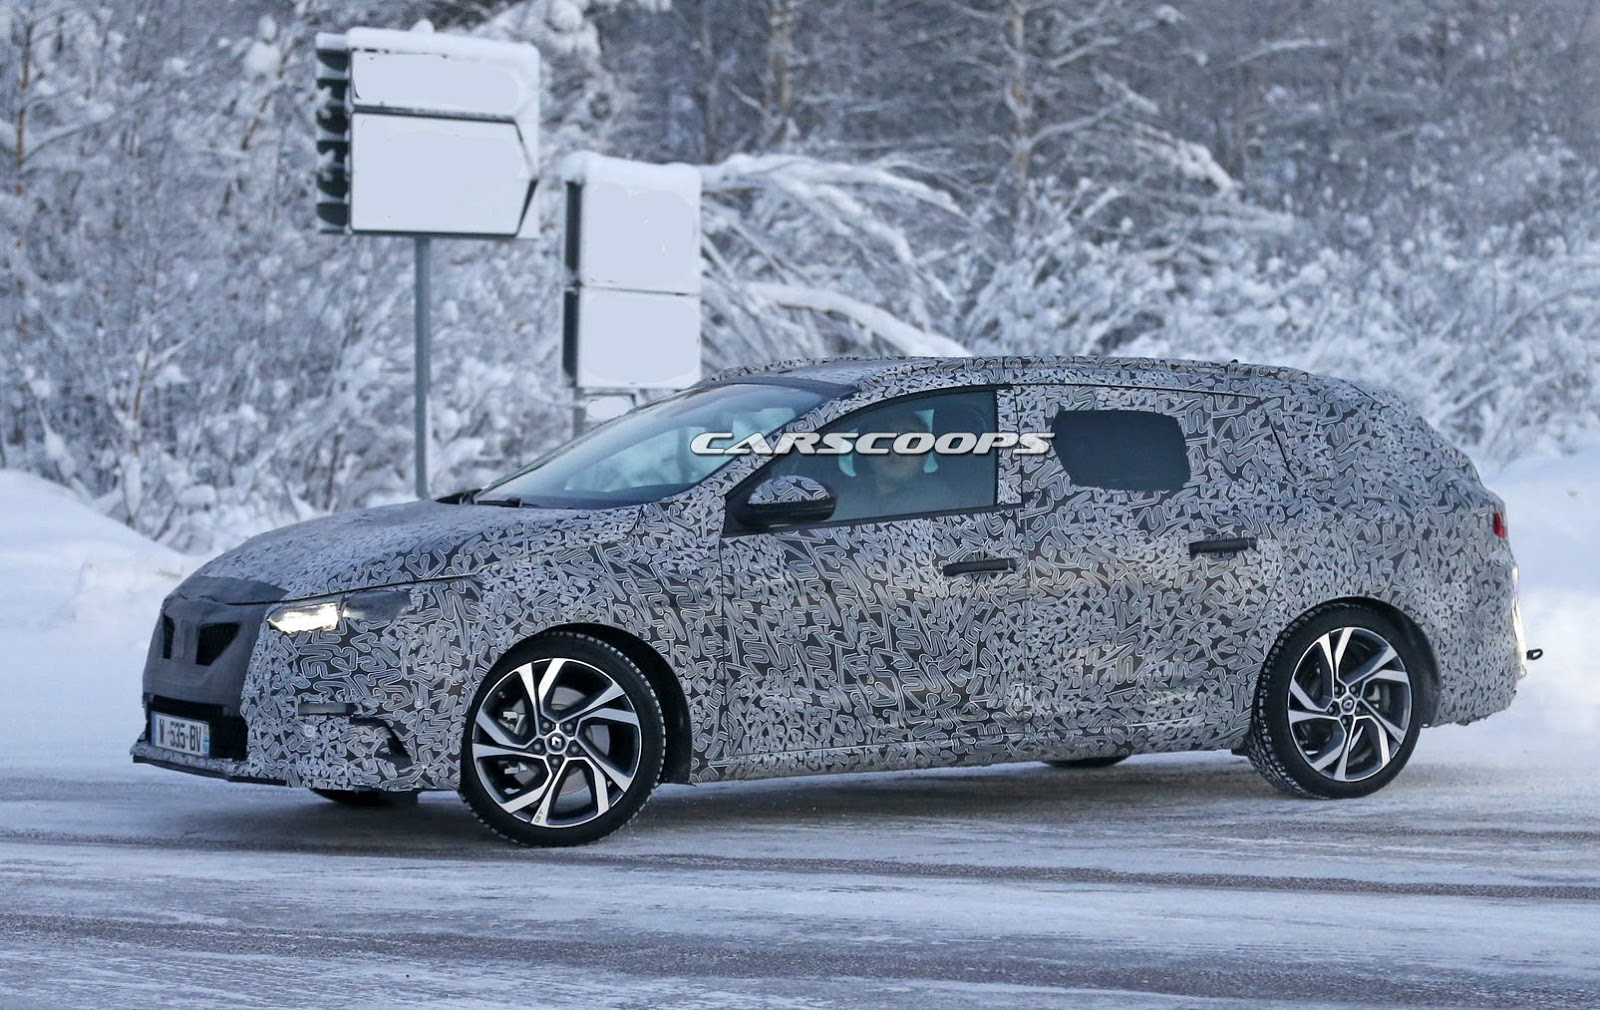 2017 renault megane sport tourer spied testing for the first time carscoops. Black Bedroom Furniture Sets. Home Design Ideas